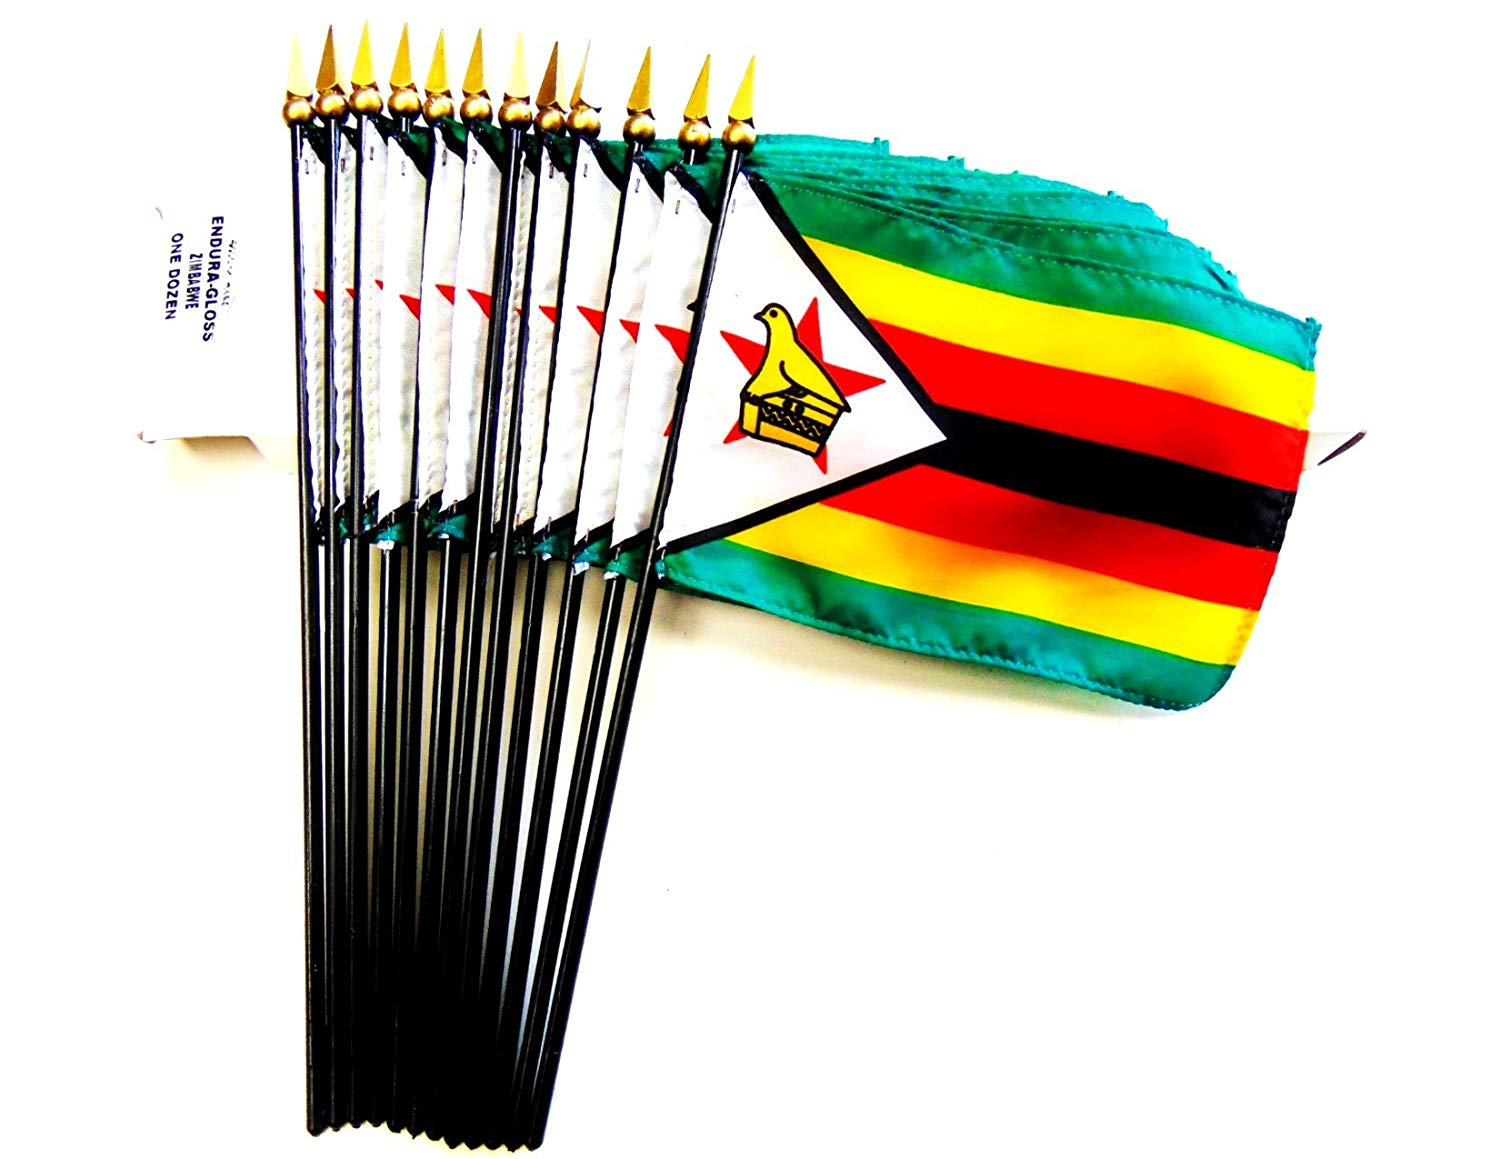 "MADE IN USA!! Box of 12 Zimbabwe 4""x6"" Miniature Desk & Table Flags; 12 American Made Small Mini Zimbabwe Flags in a Custom Made Cardboard Box Specifically Made for These Flags"